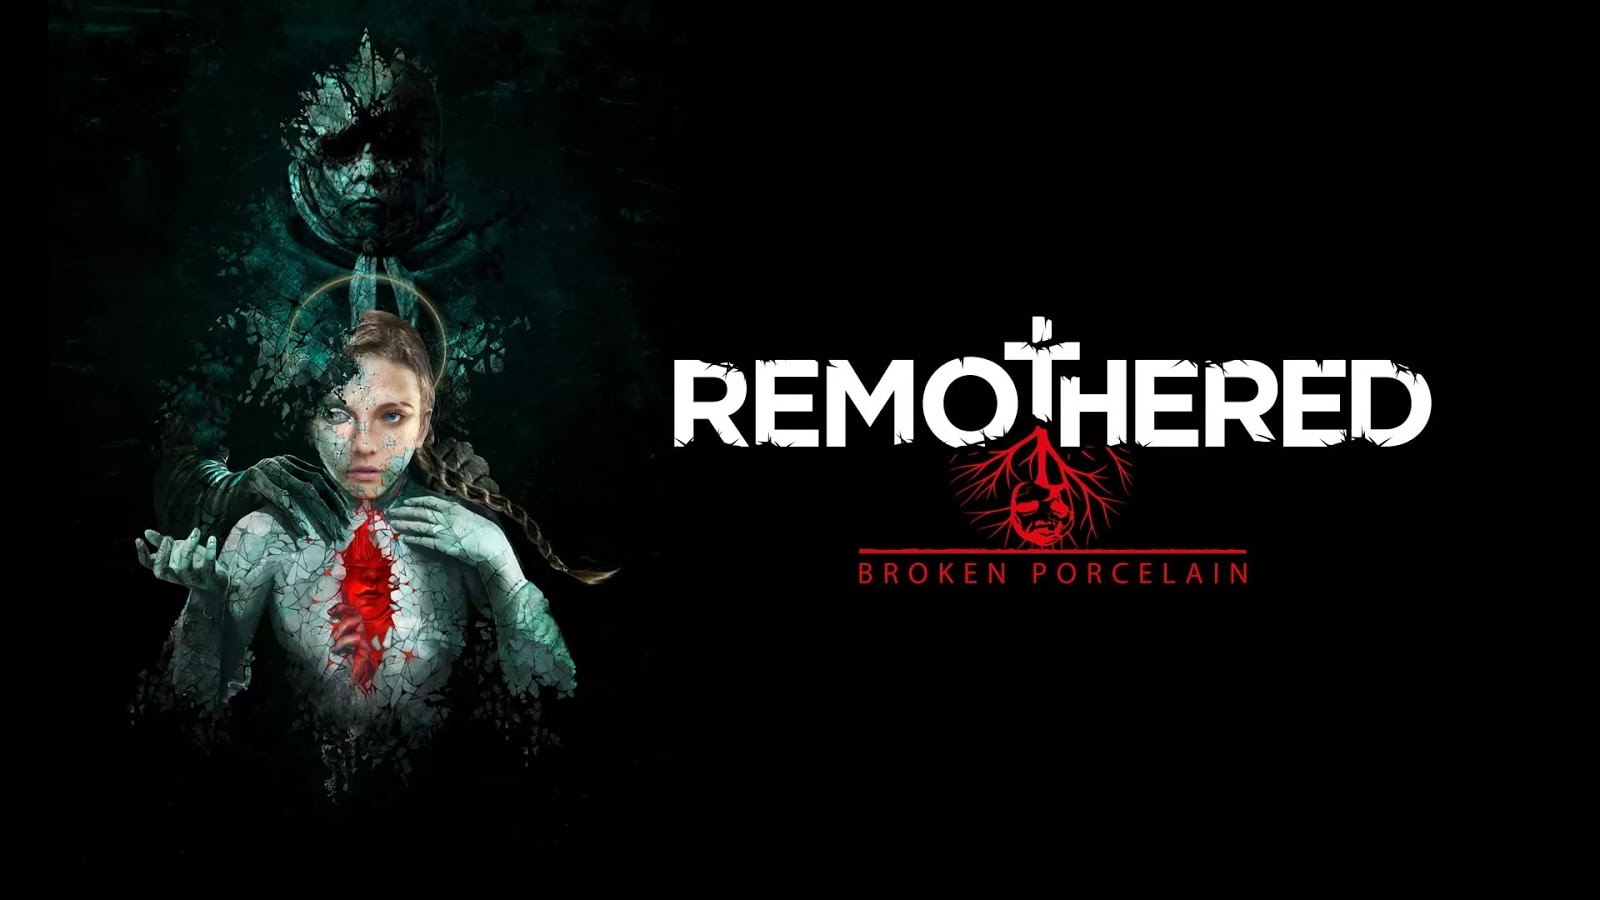 Remothered Review The story is fully interconnected and exciting with many distinct details and varied melodies.